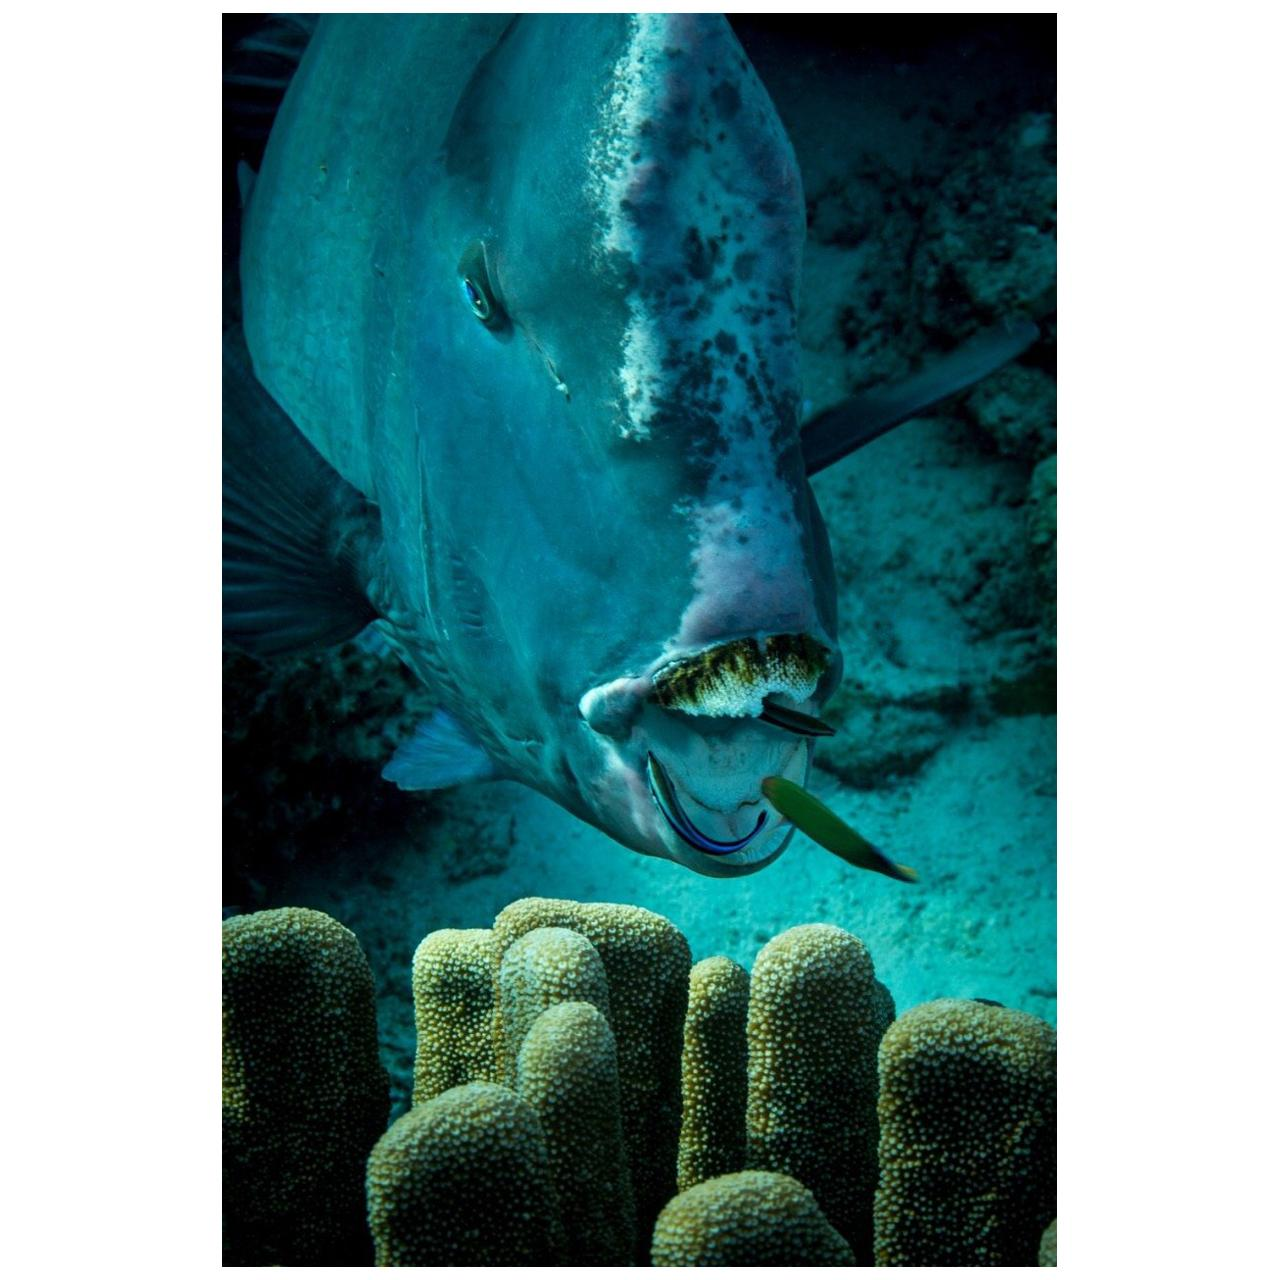 Limited Edition Underwater Photography Signed and Numbered by Michael Zaimov